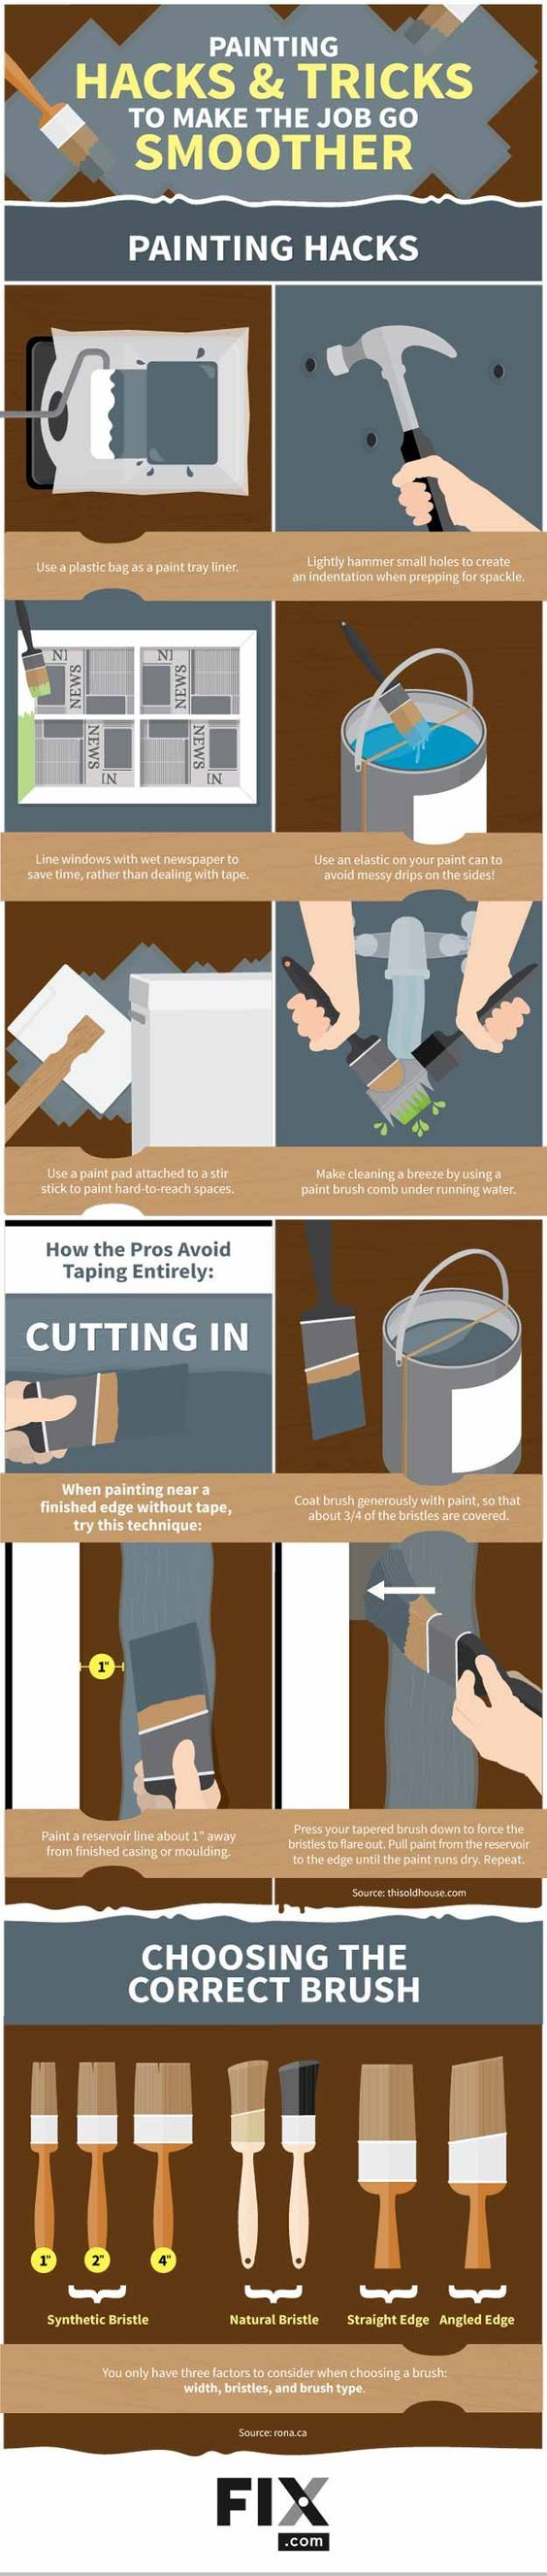 Painting Hacks and Tricks For Painting Your Own Interiors | DIY Home Improvement by Pioneer Settler at http://pioneersettler.com/painting-hacks-tricks/